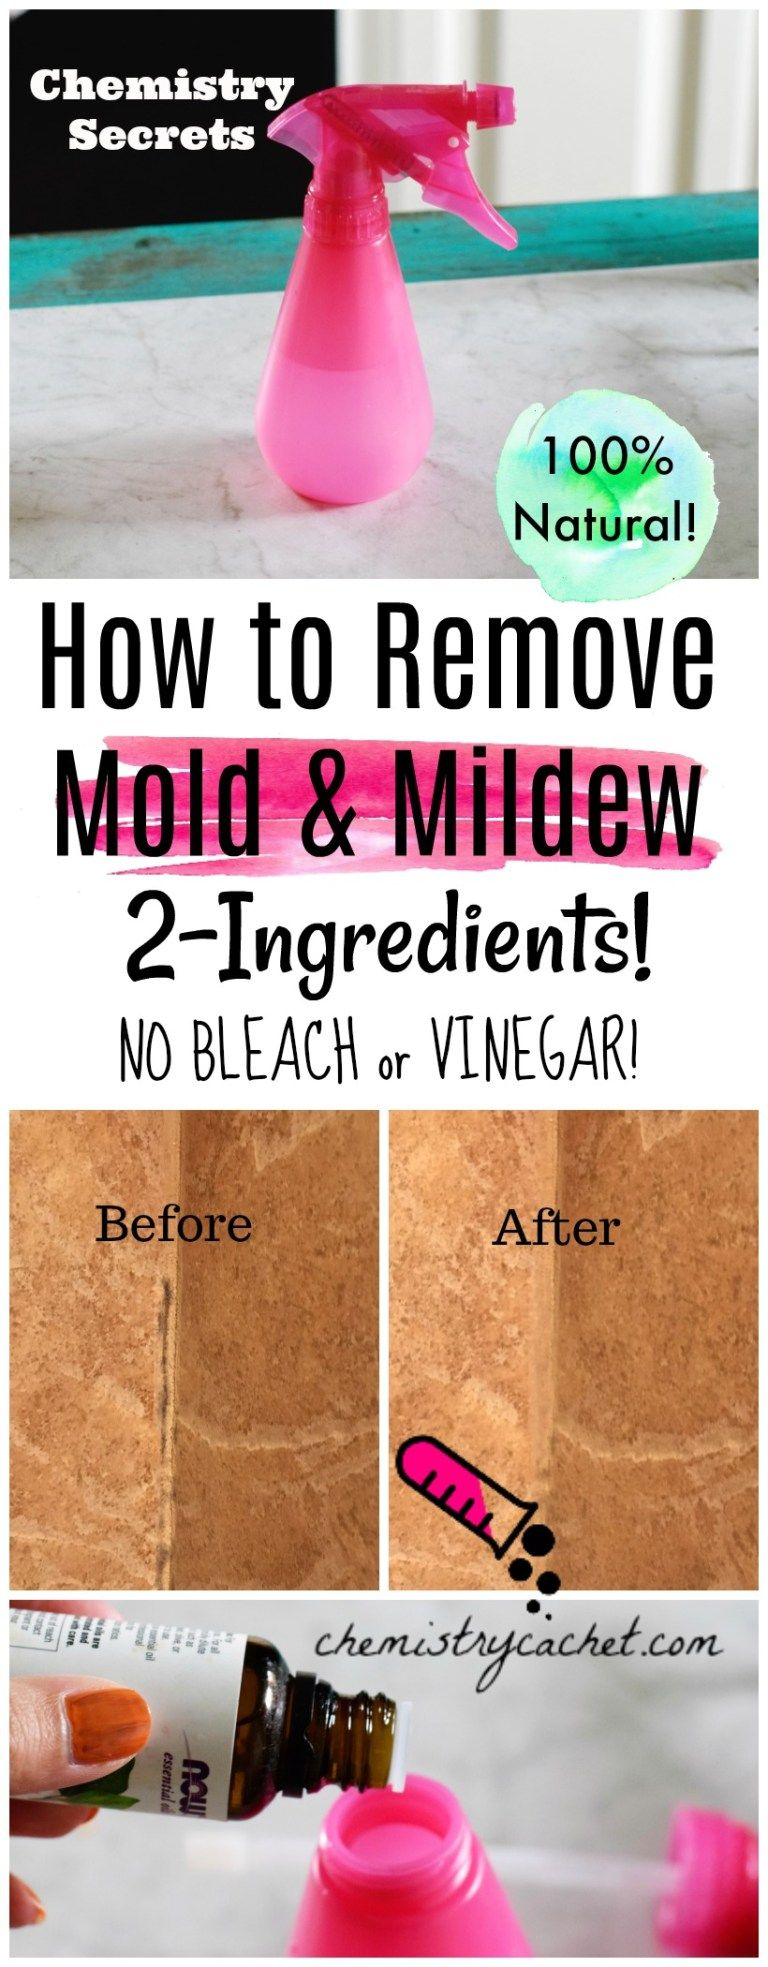 The Best Way to Remove Mold & Mildew with 2 Ingredients